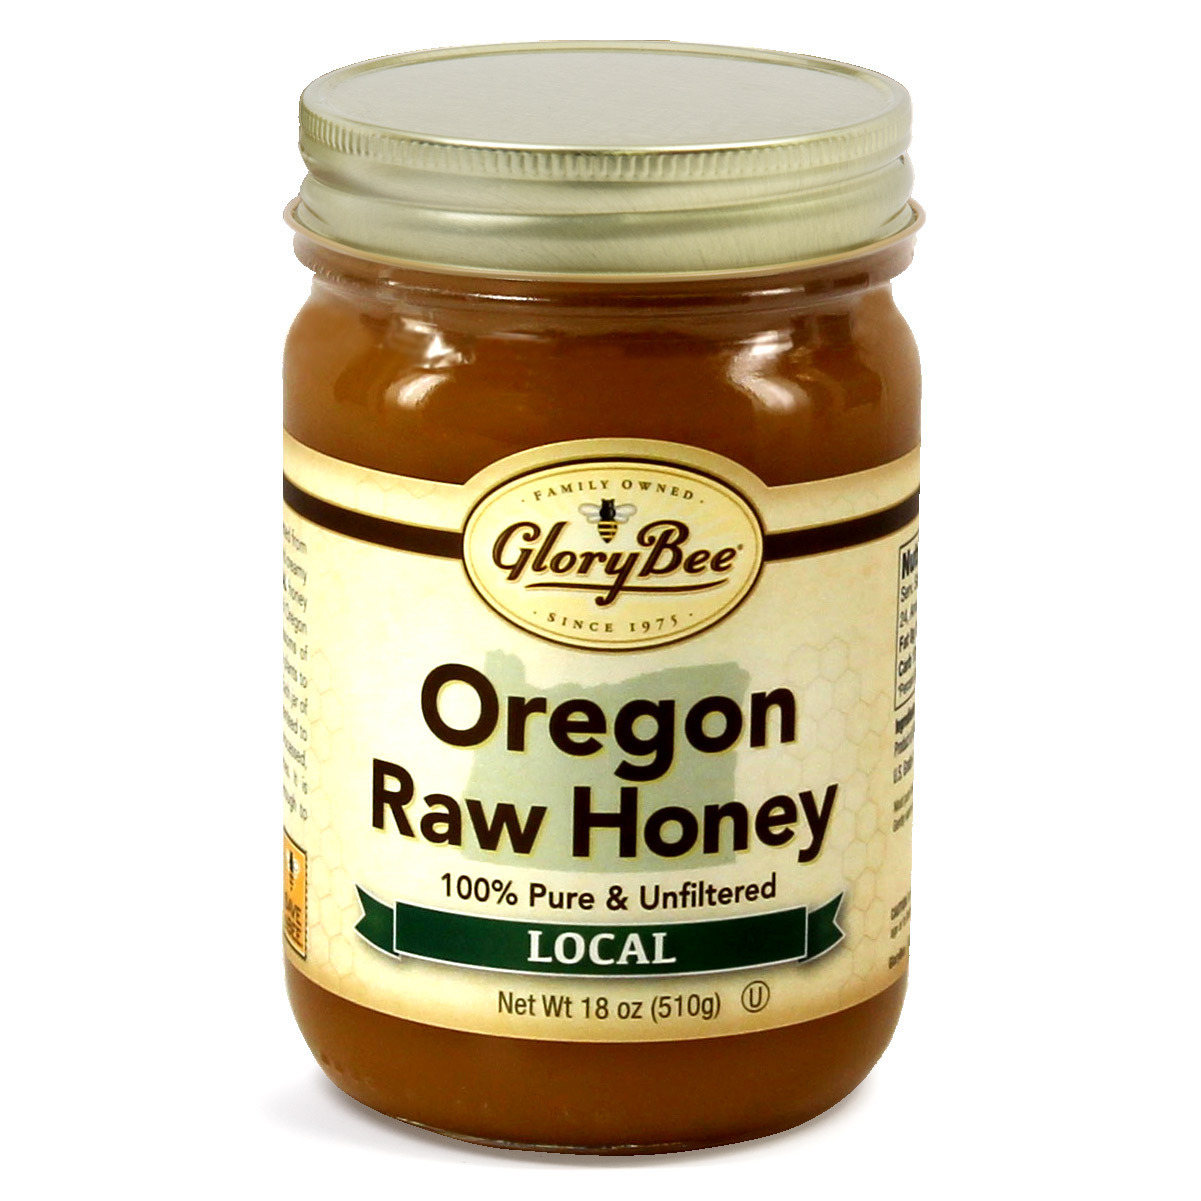 Local Oregon Raw Honey | The Natural Products Brands Directory